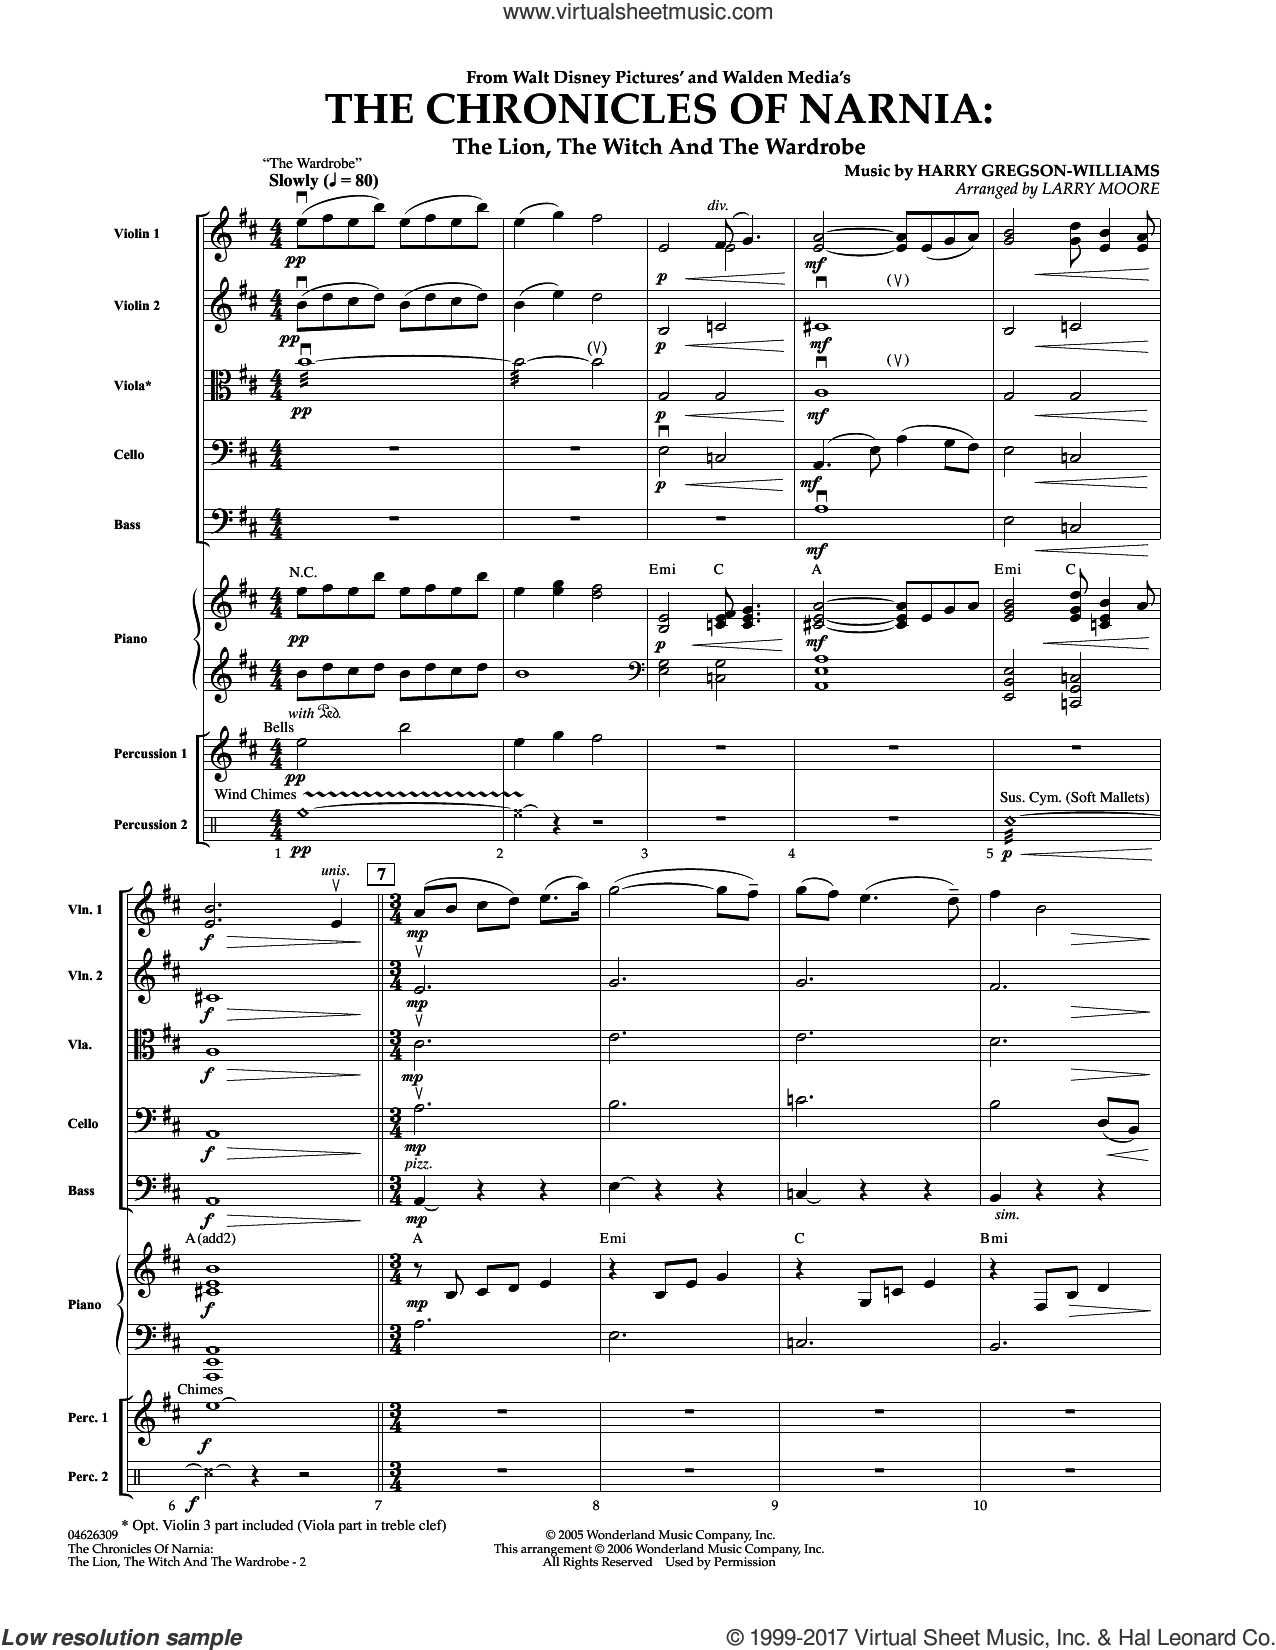 The Chronicles of Narnia (COMPLETE) sheet music for orchestra by Larry Moore and Harry Gregson-Williams, intermediate skill level